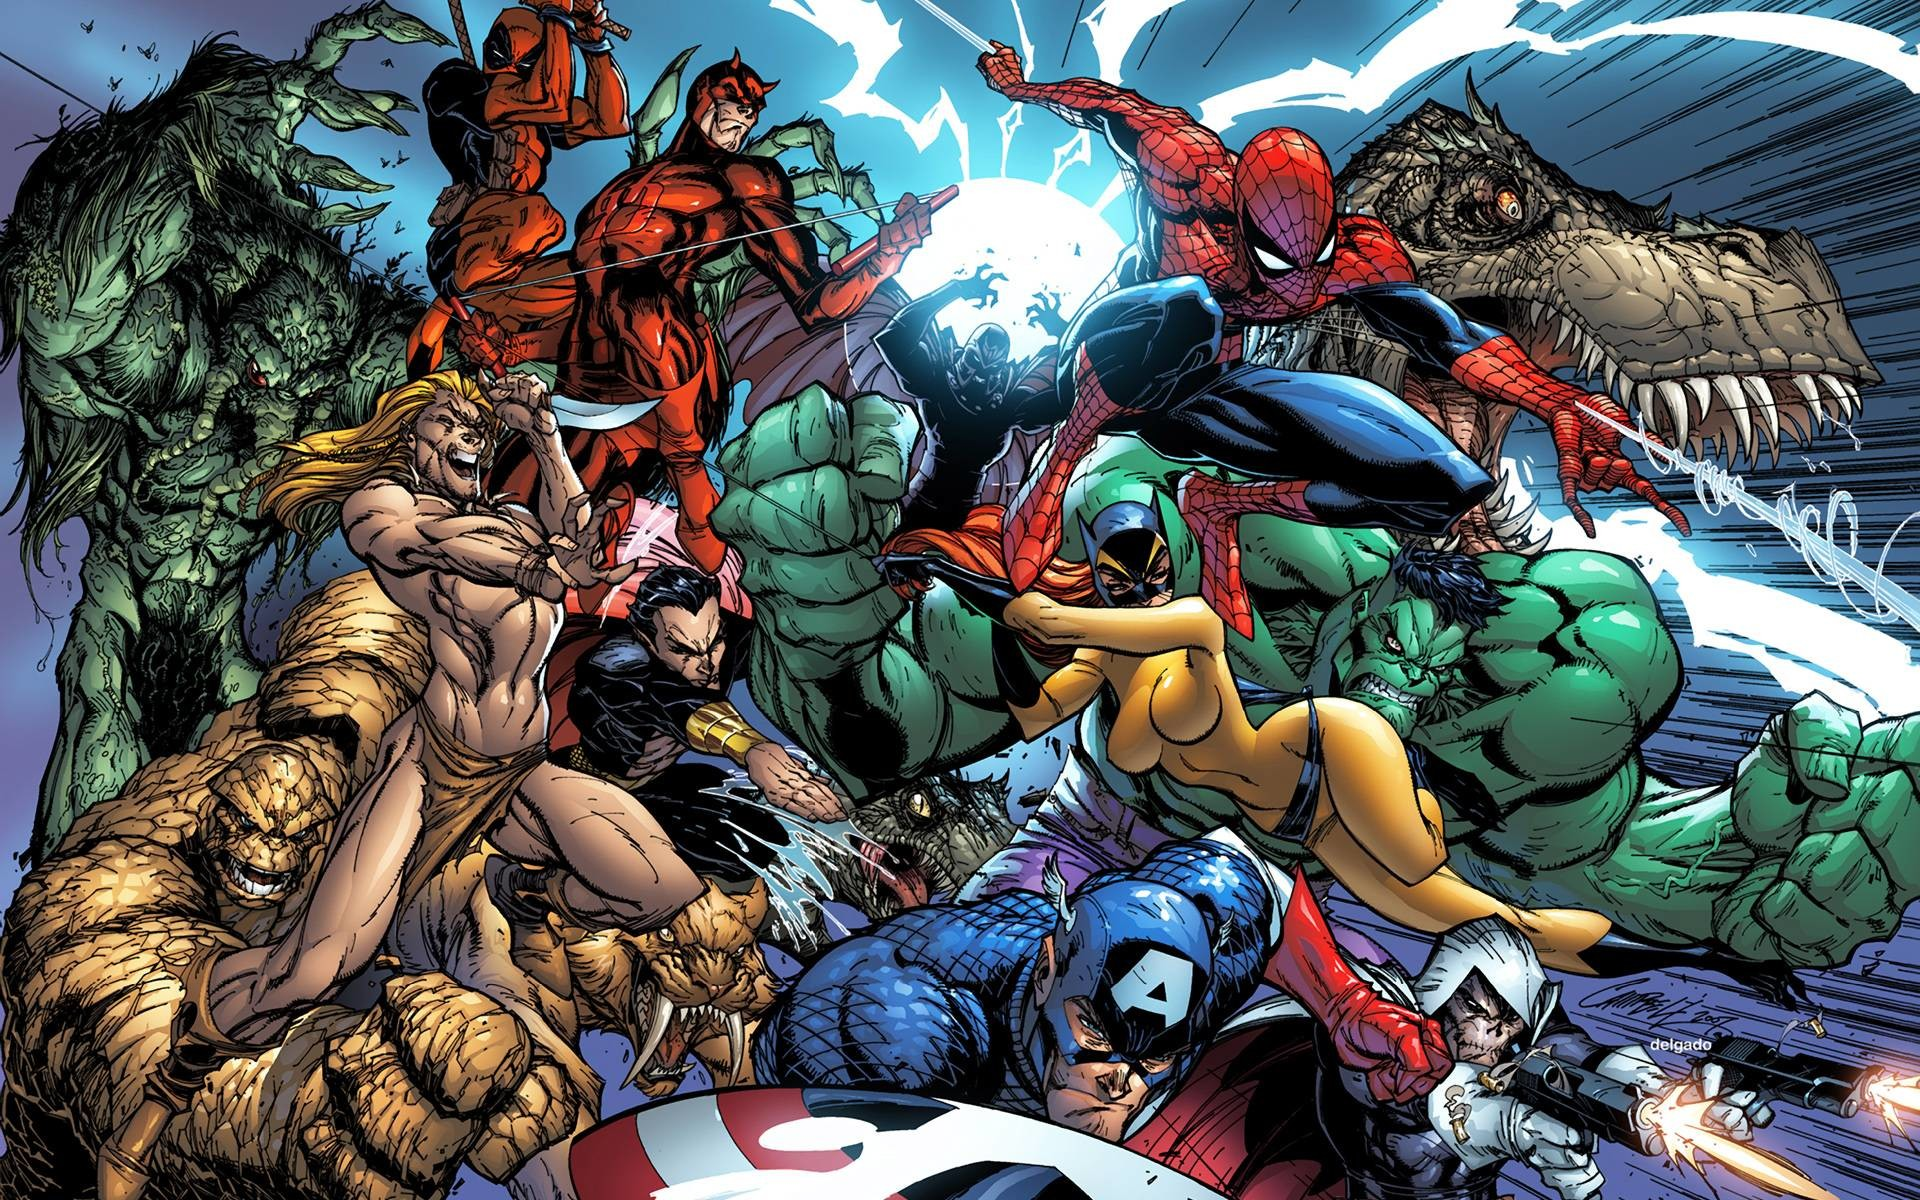 1920x1200 Marvel Wallpaper Widescreen 27979 Hd Wallpapers in Movies .